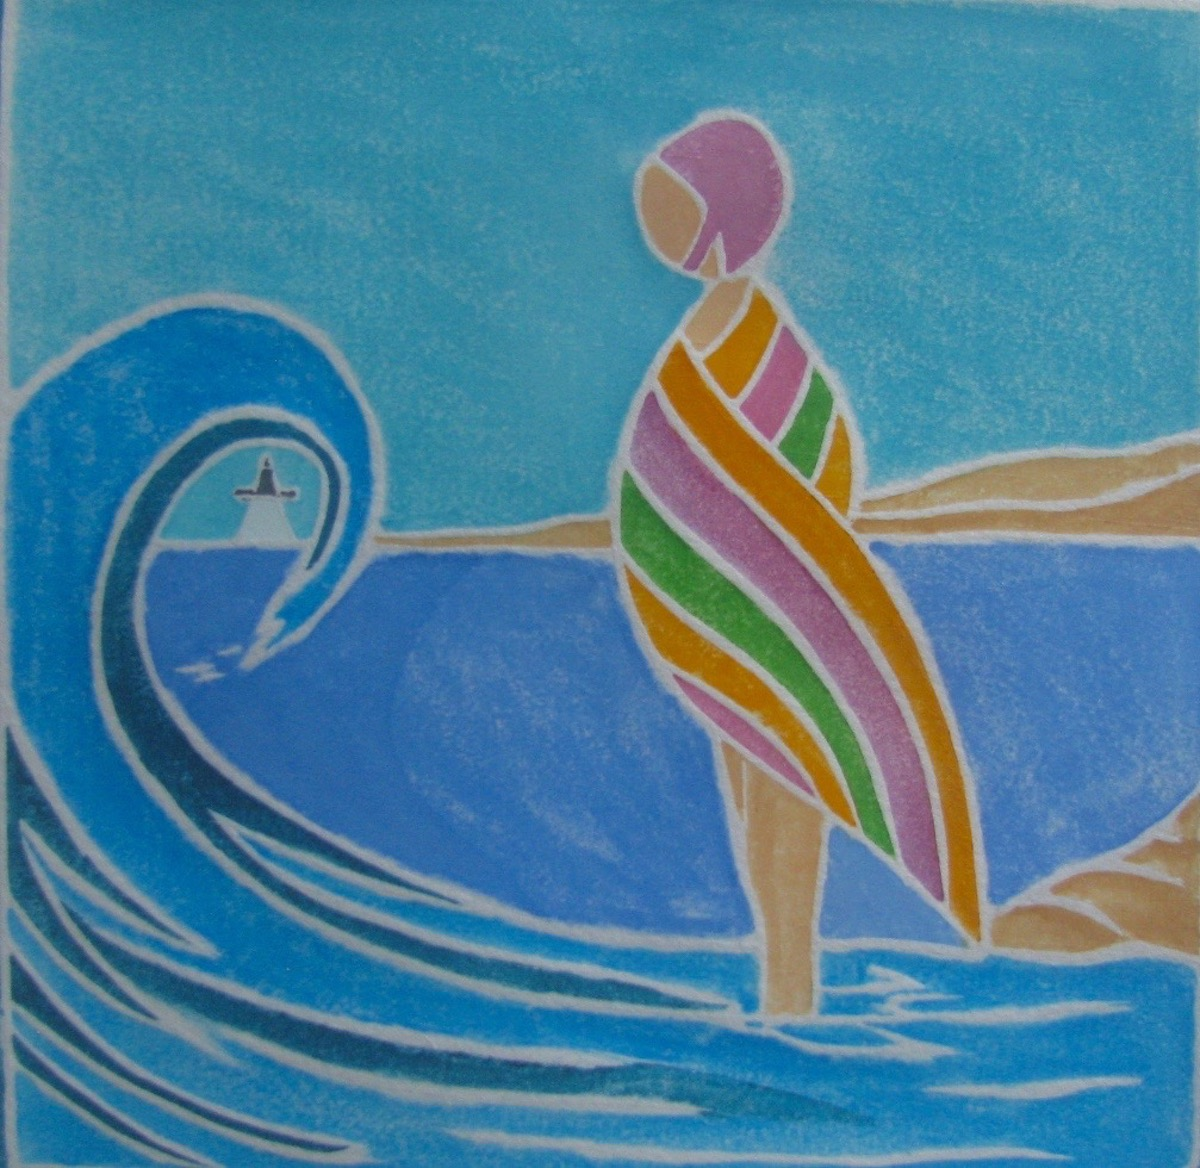 """After the Swim"" image size 6"" x  6"""